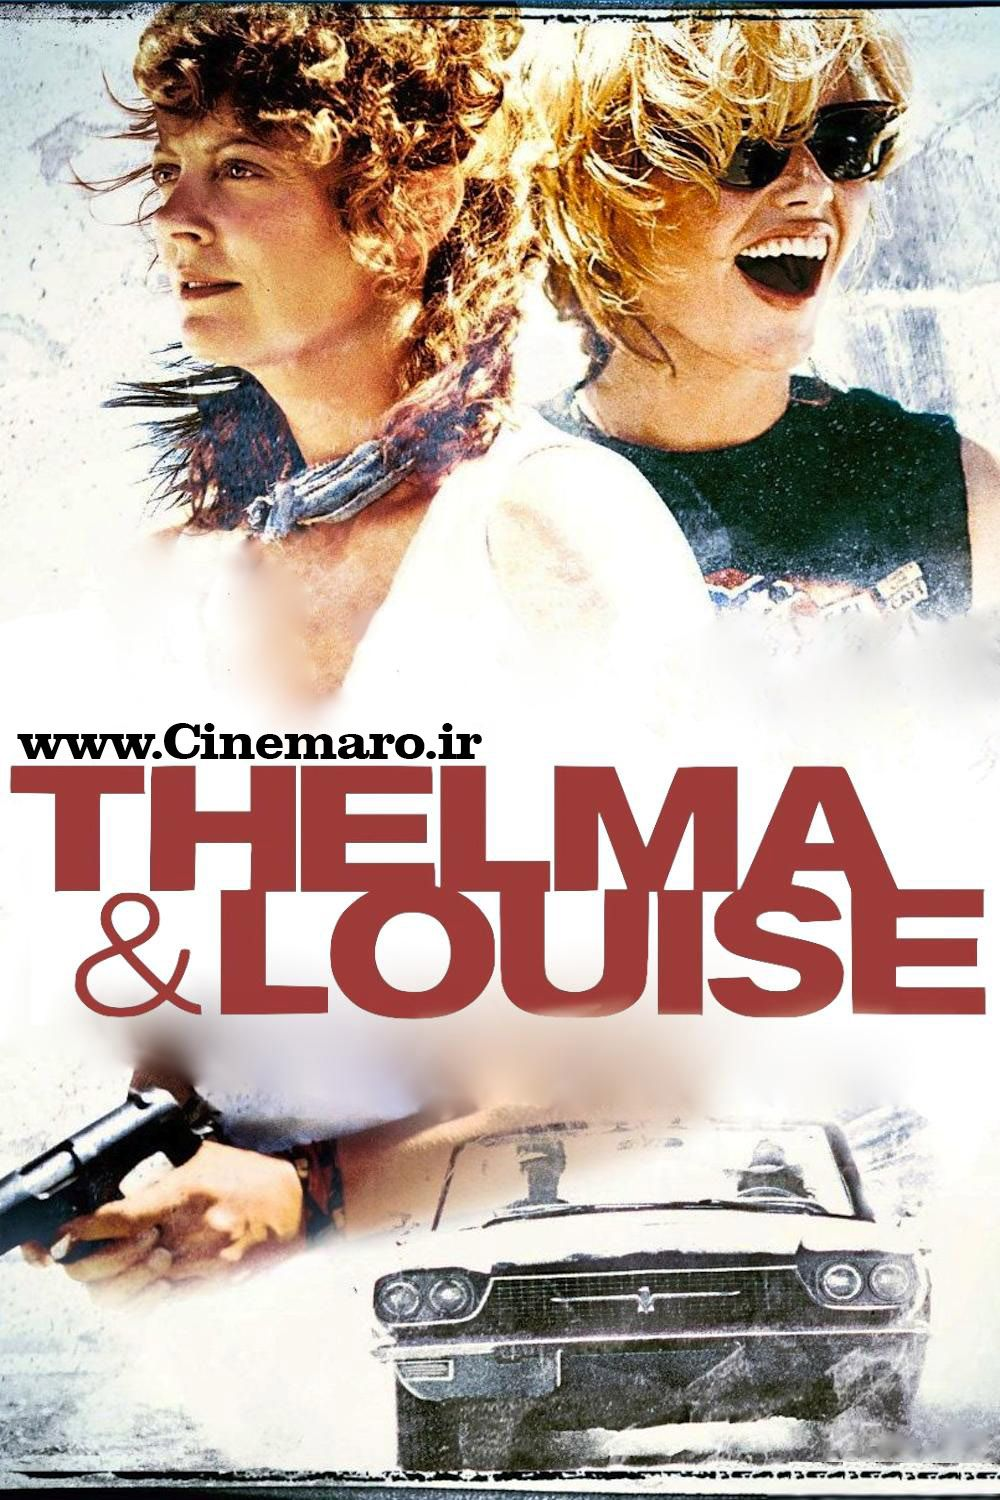 thelma and louise movie poster movie posters pinterest